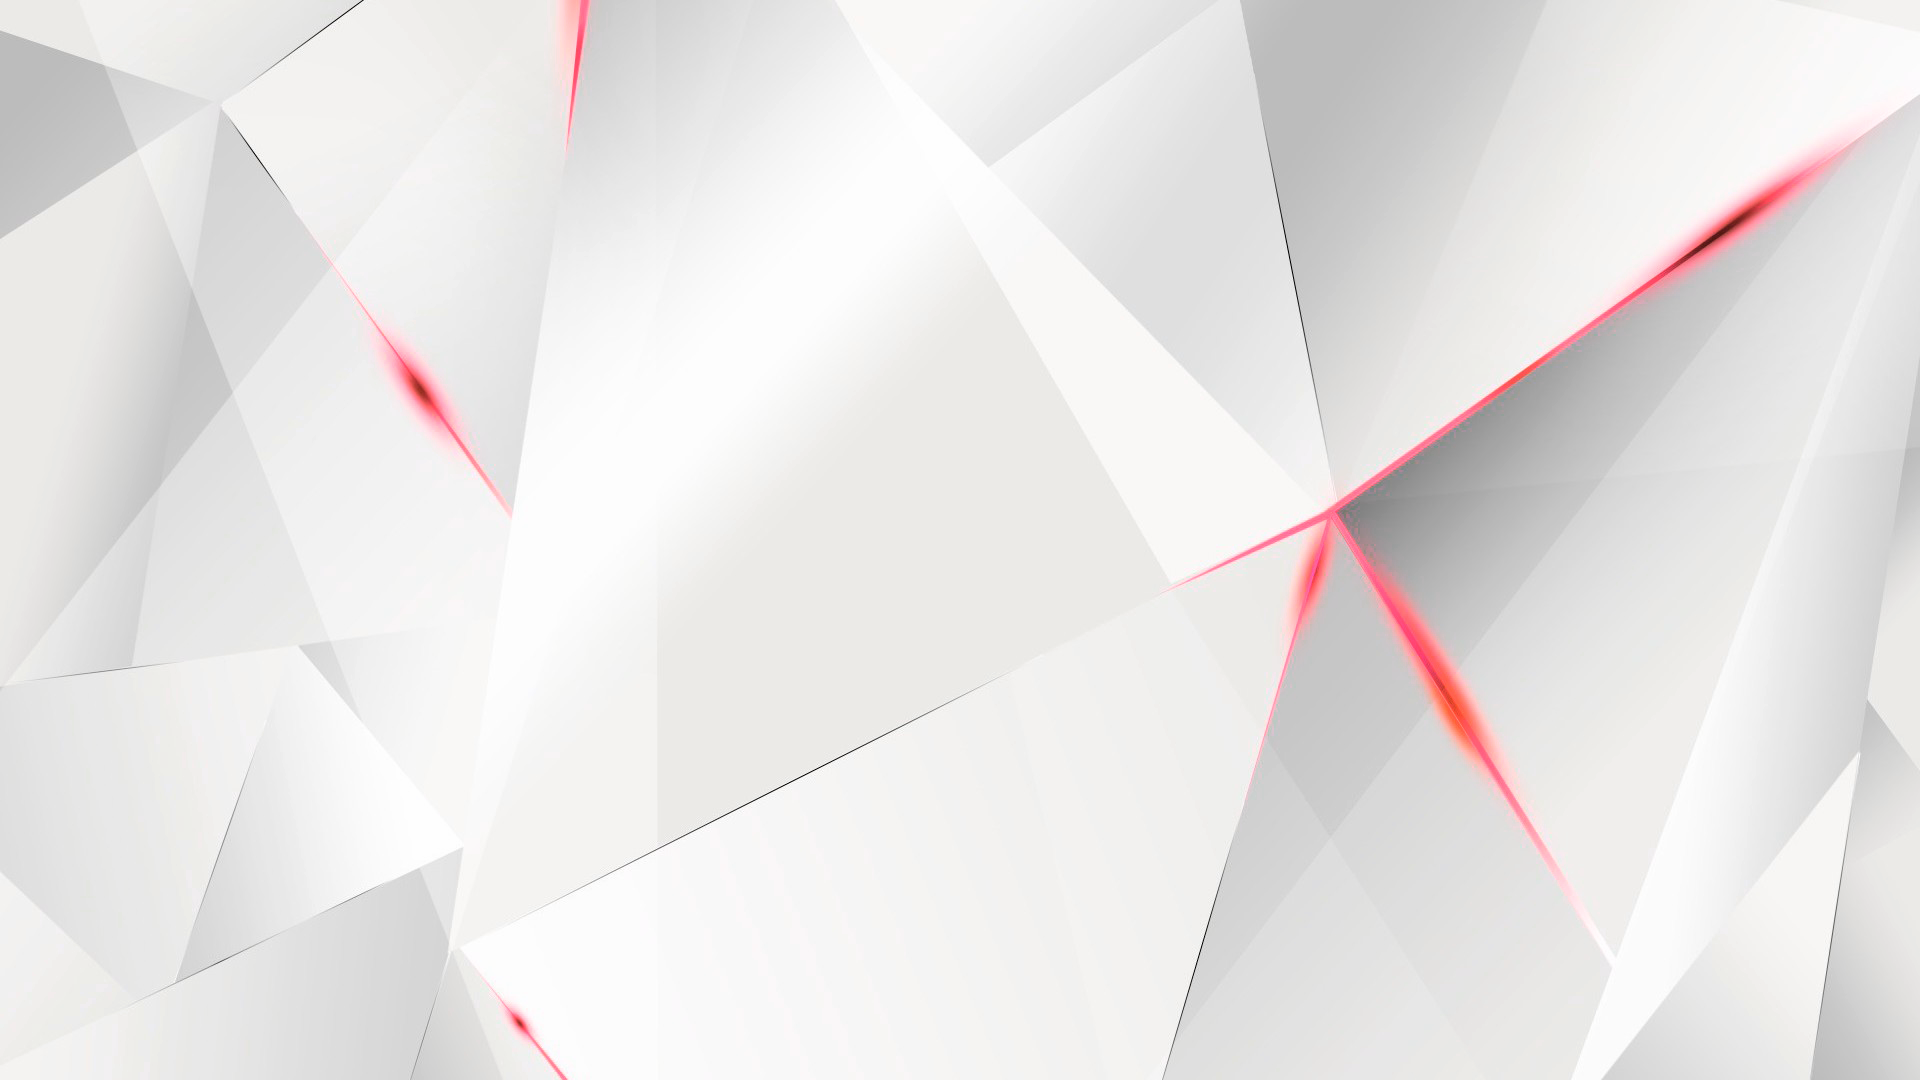 wallpapers red abstract polygons white bg by kaminohunter on deviantart red abstract polygons white bg